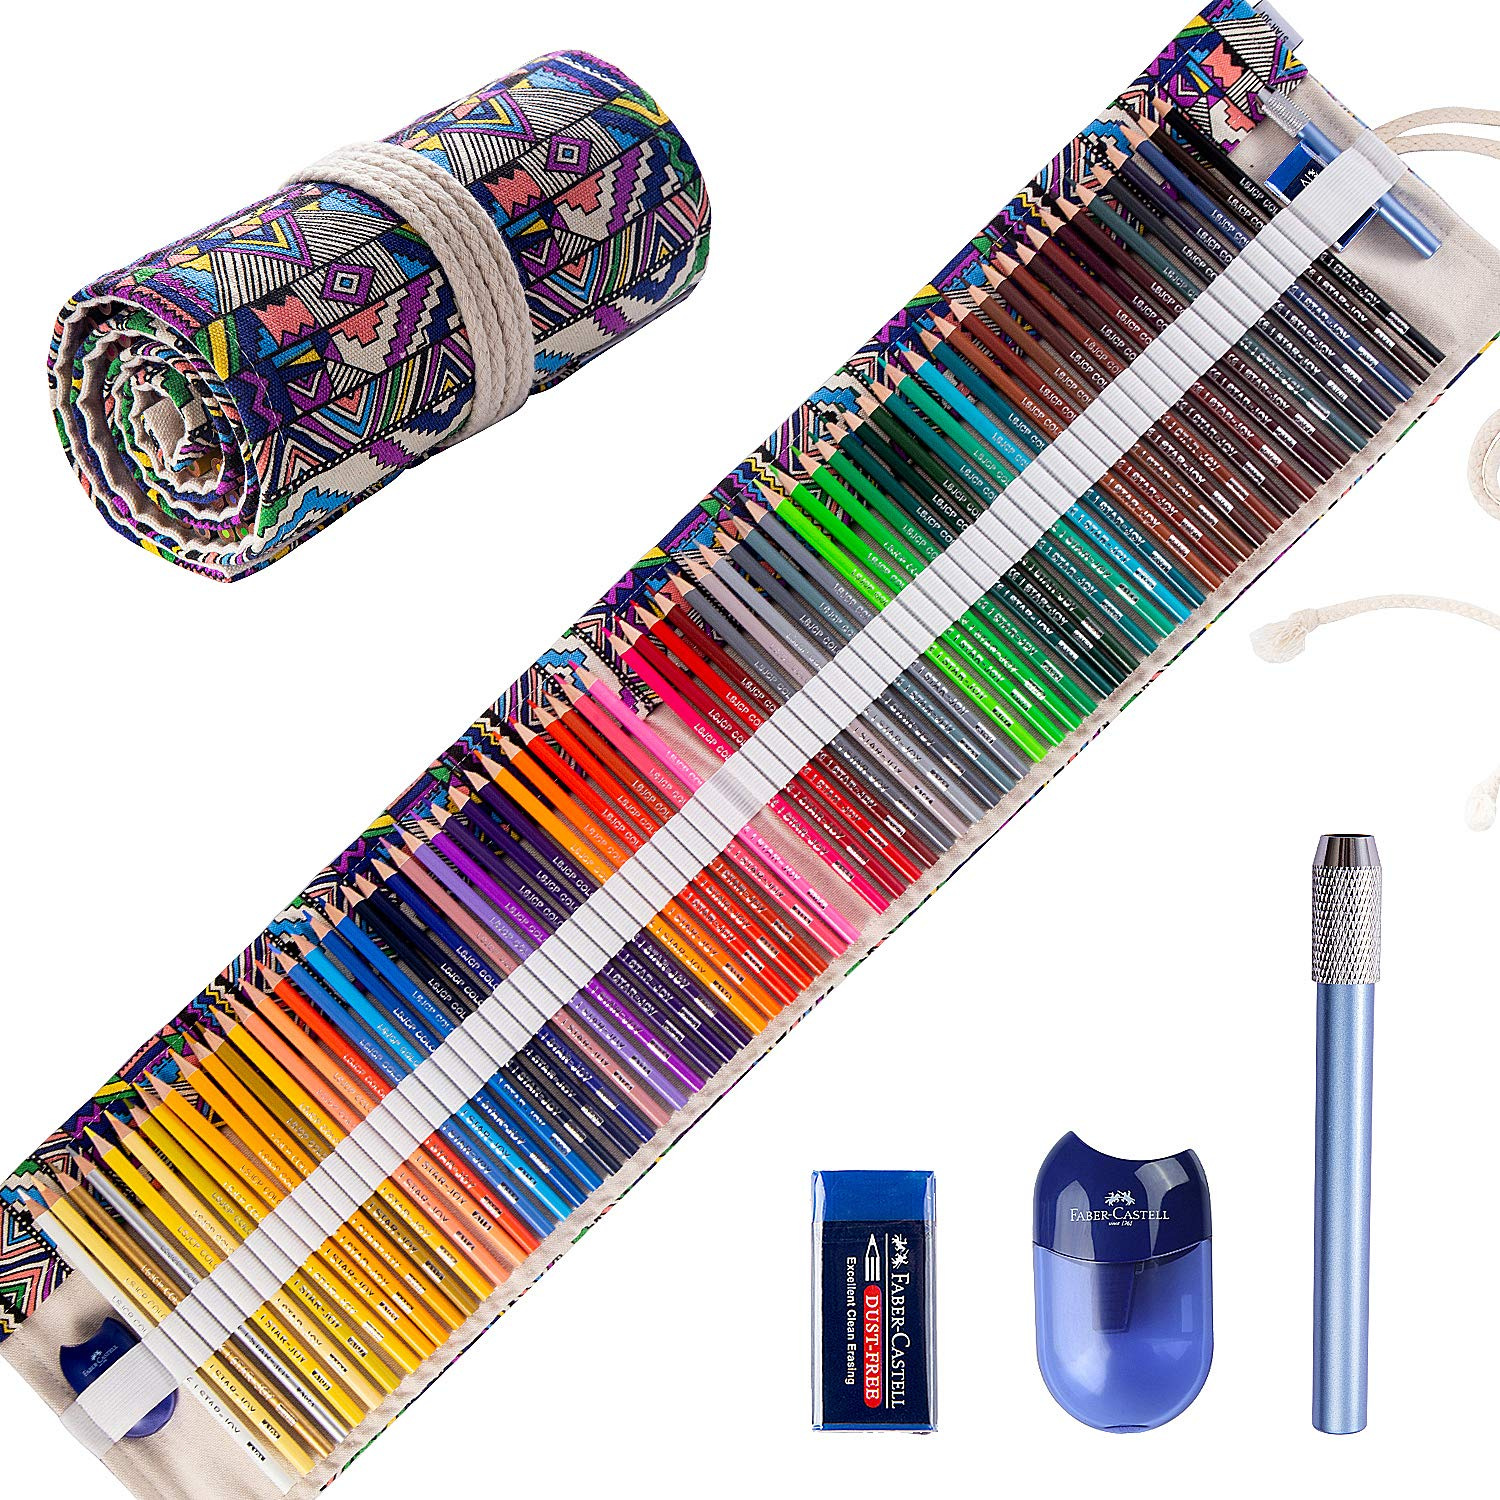 Colored Pencils Set for Adult Coloring Books (72-Count), New and Improved Premium Artist Pencils, Handmade Canvas Pencil Wrap, Extra Accessories, Holiday Gifts, Oil Based Colored Pencil by JOYSTAR